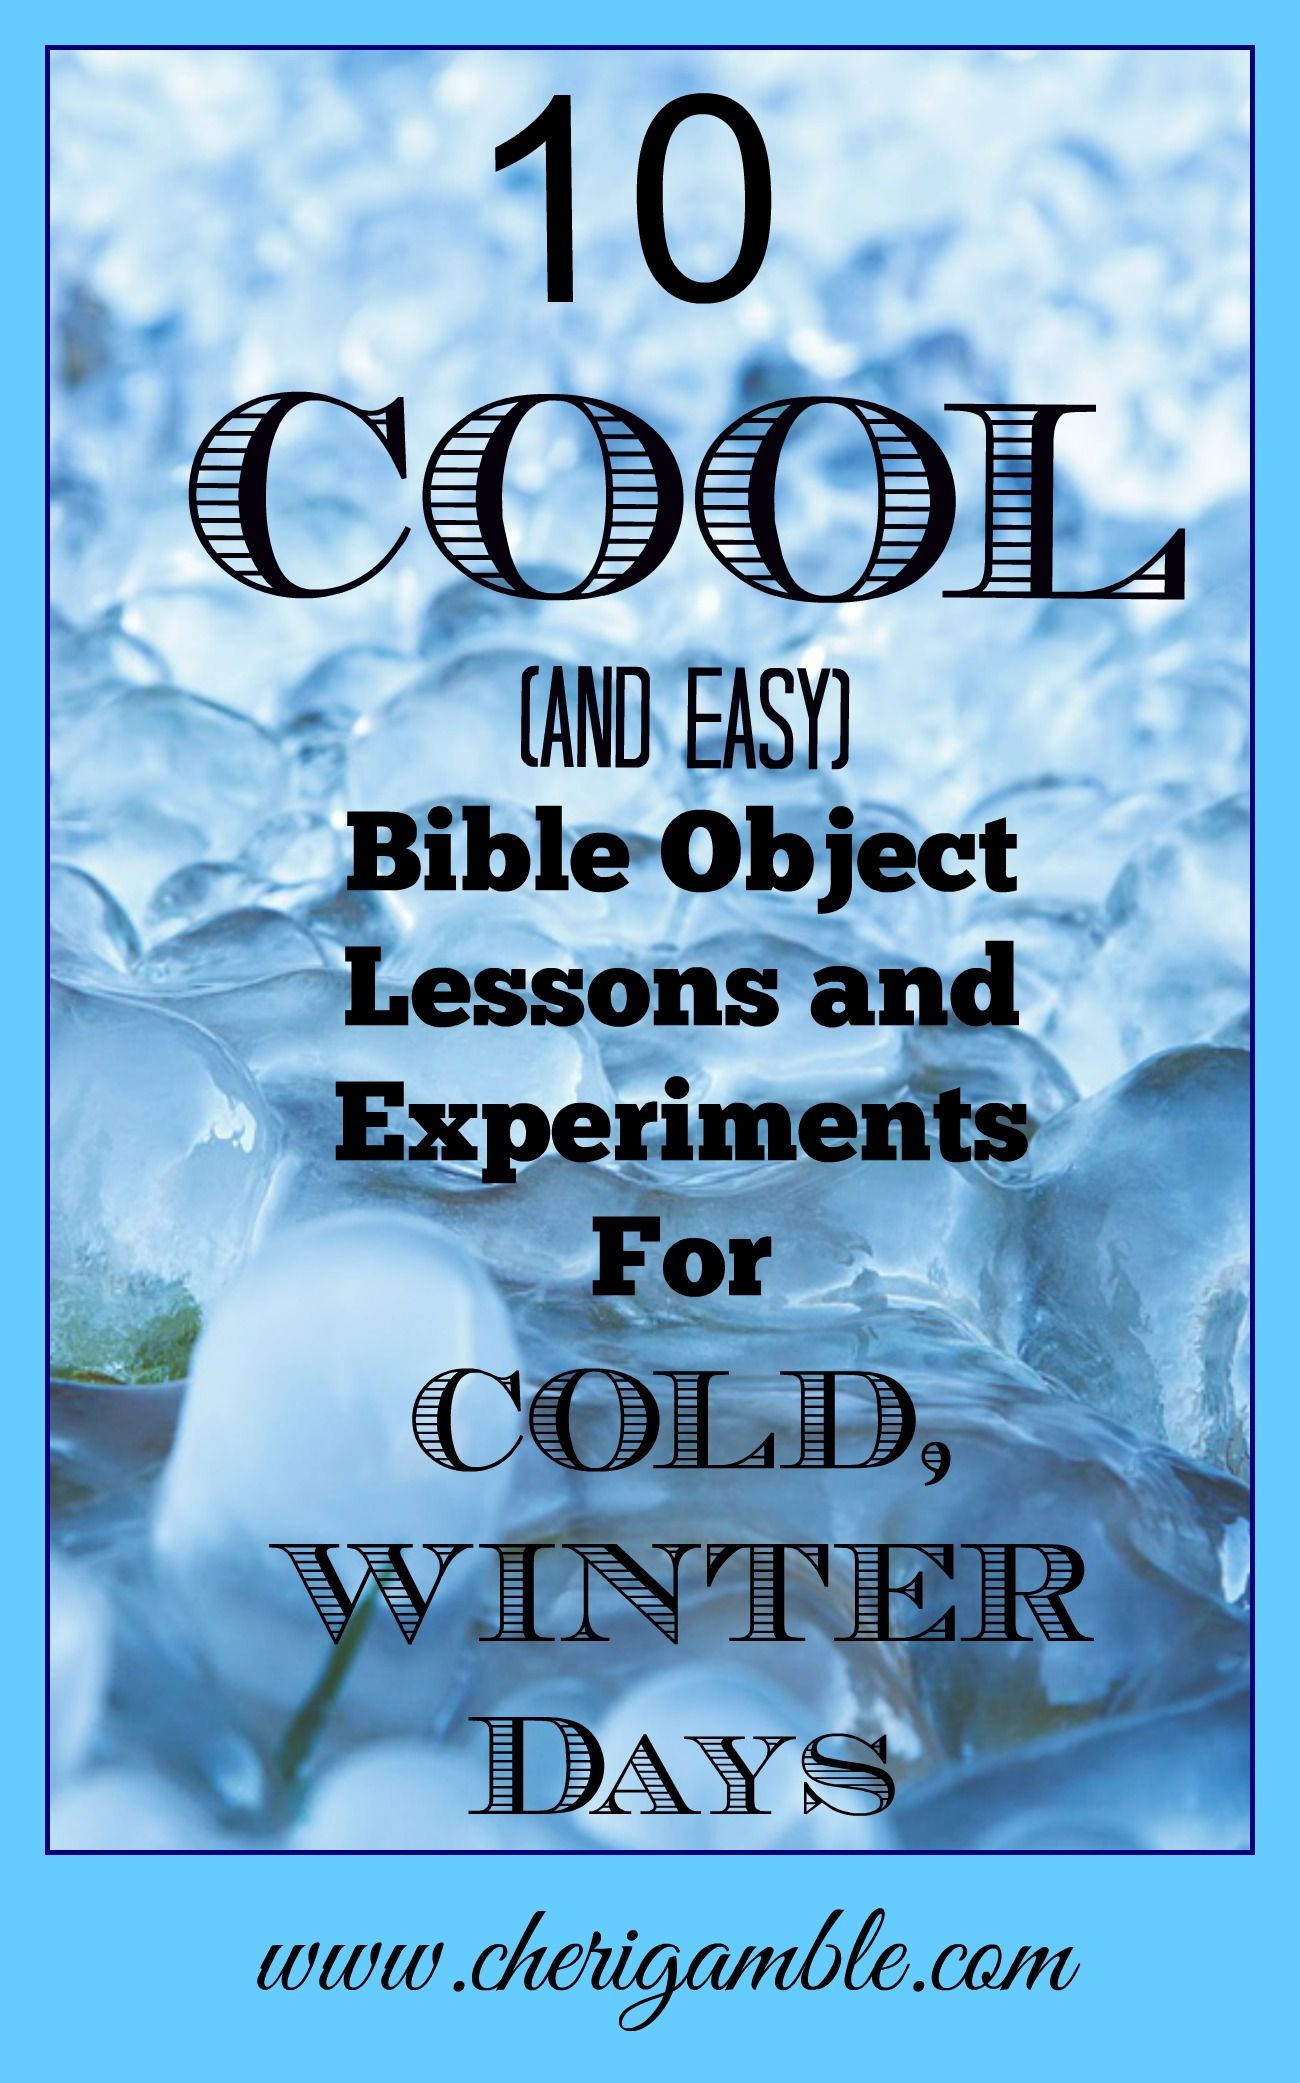 10 Cool And Easy Bible Object Lessons And Experiments For